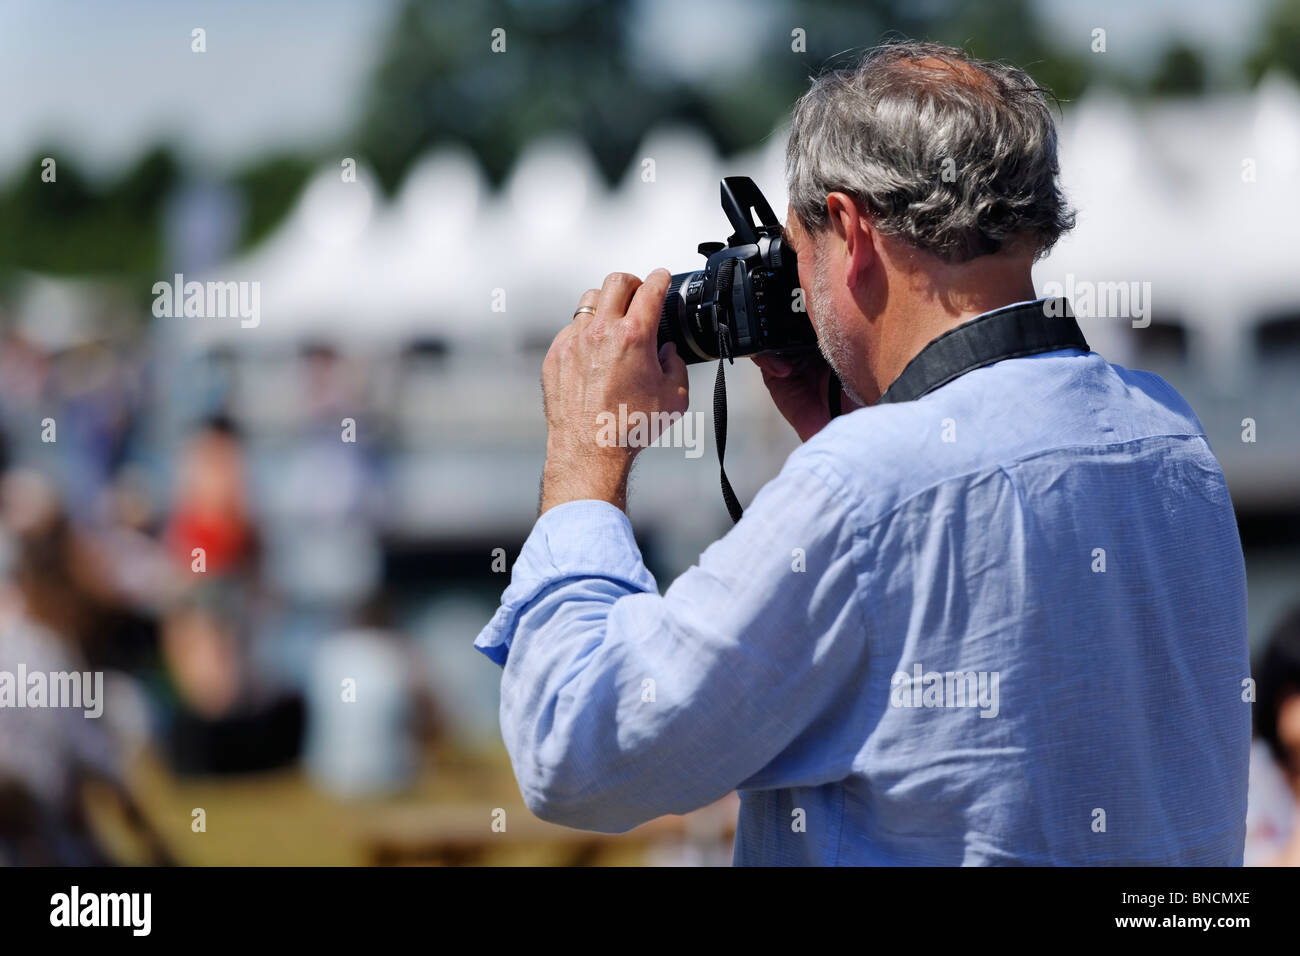 A Photographer - Stock Image